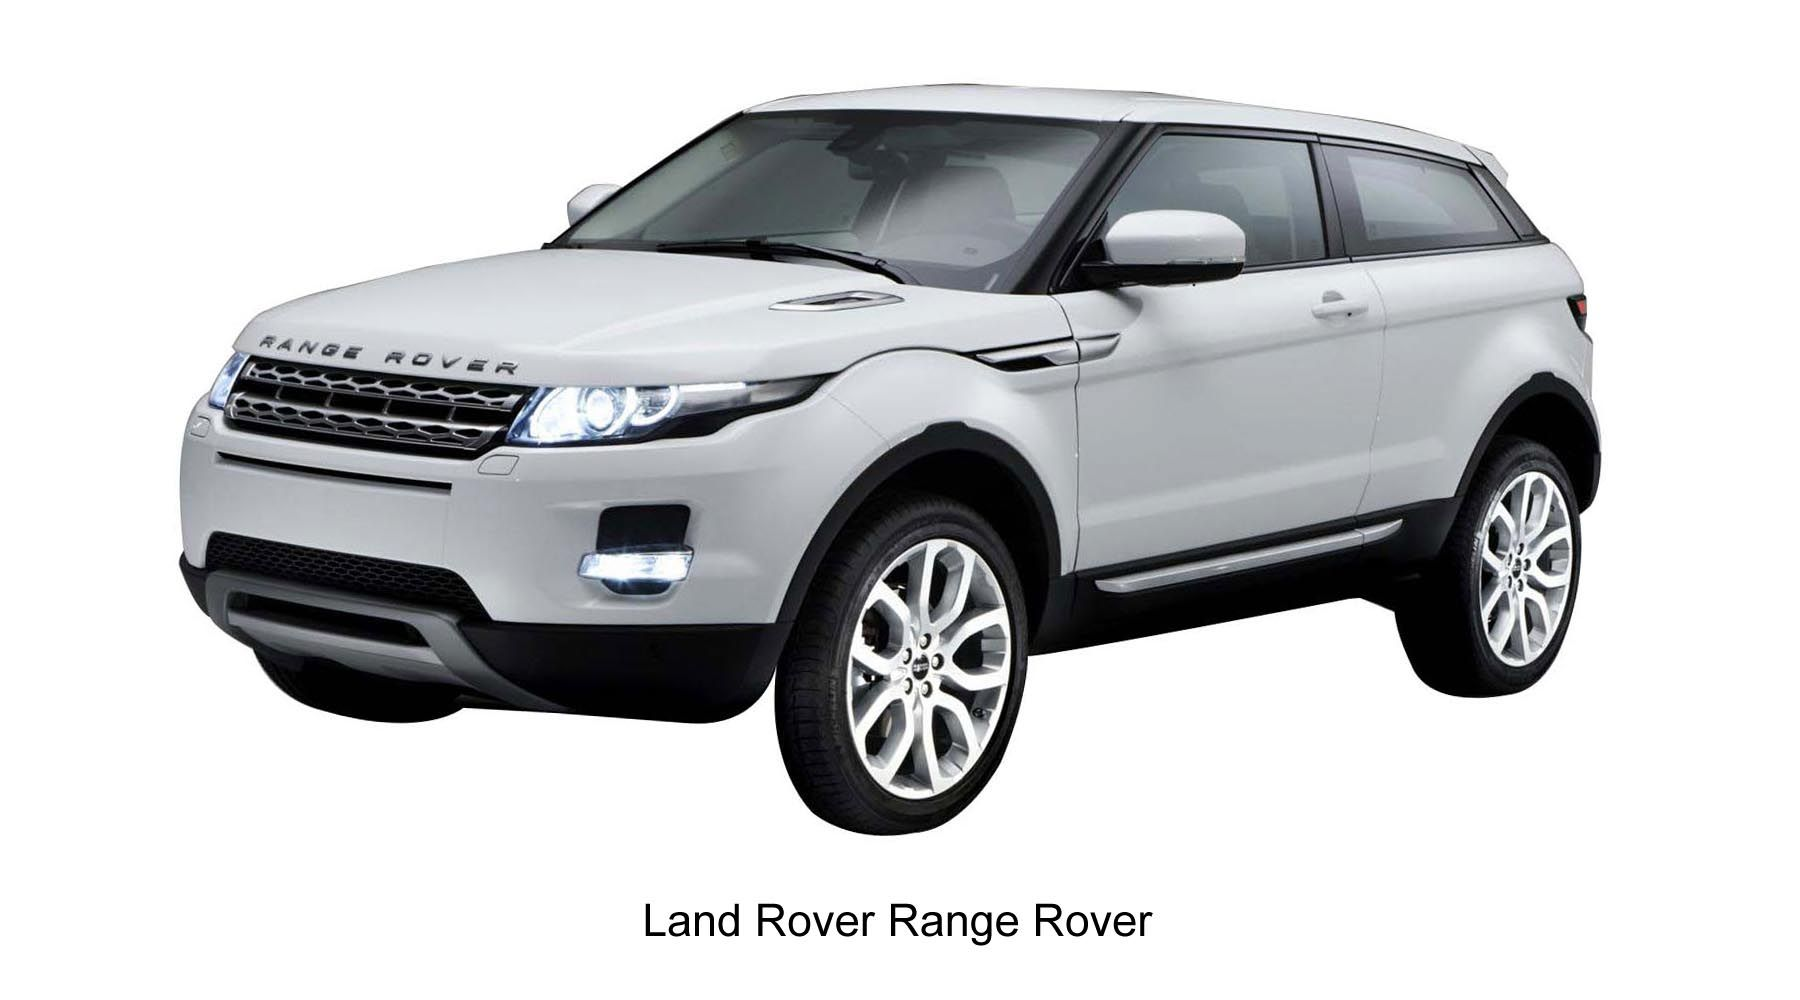 evoque list range suv price landrover car l rover rangerover sale the in land for